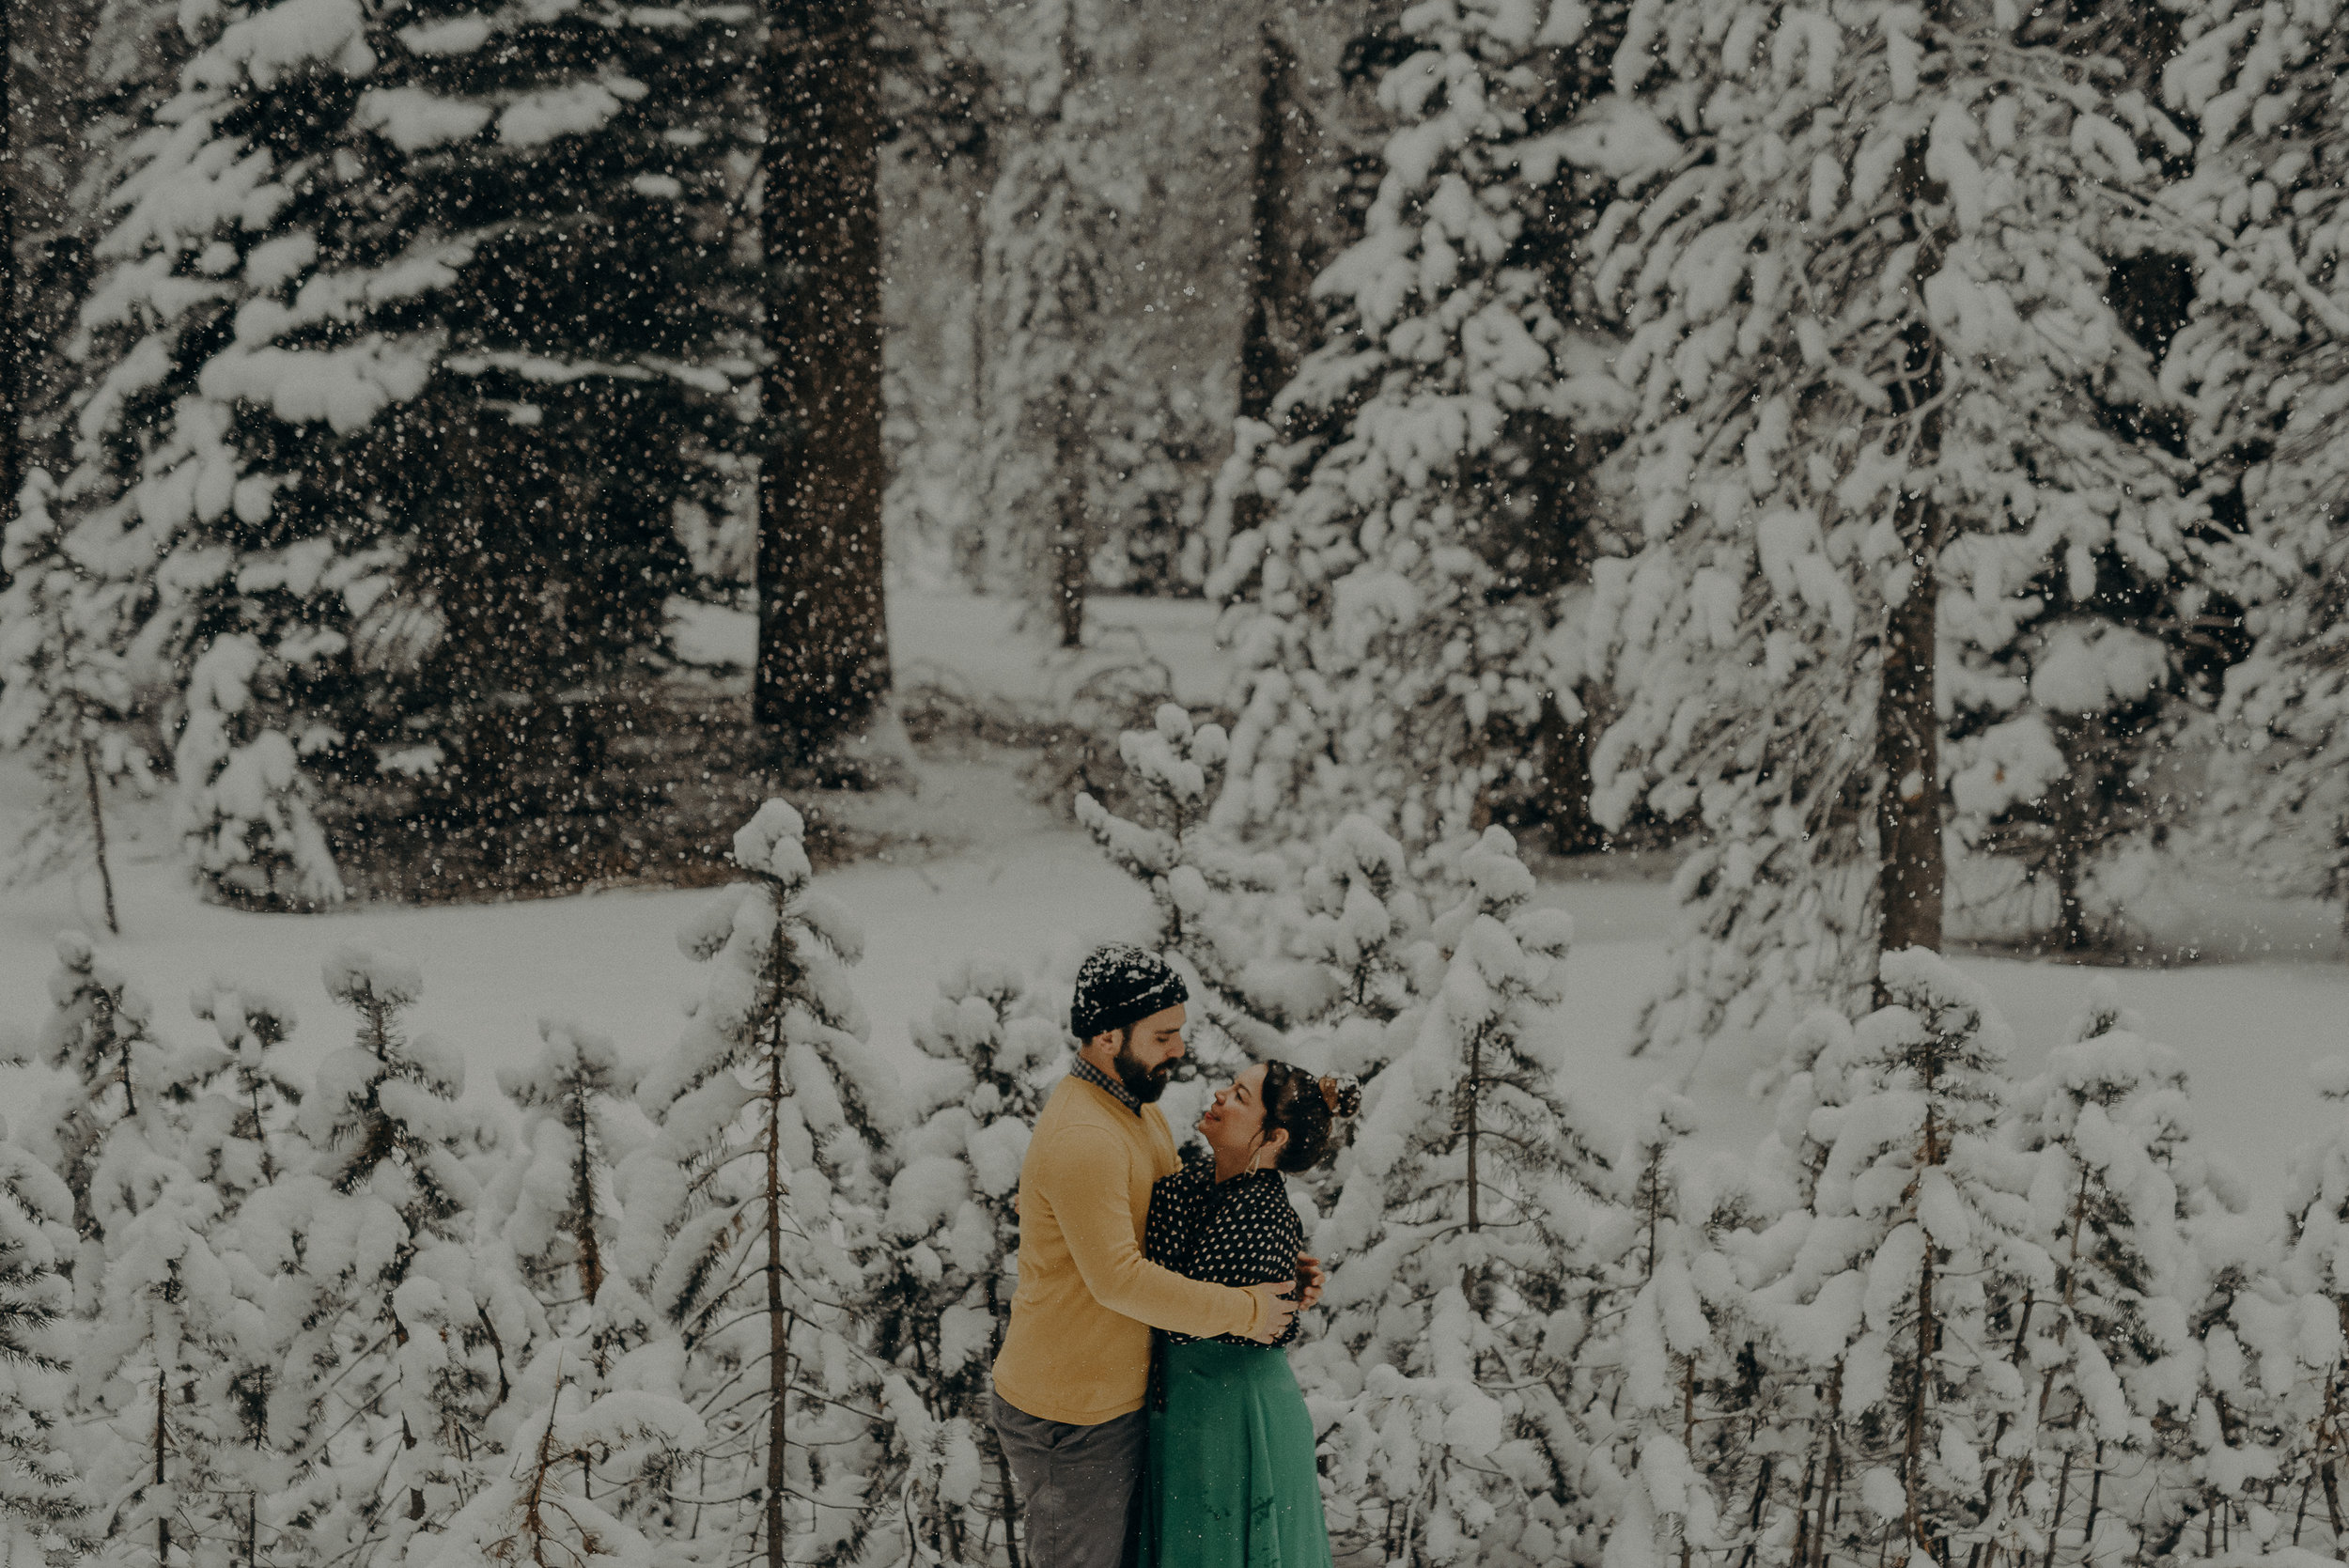 ©Isaiah + Taylor Photography - Los Angeles Wedding Photographer - Snowing engagement session-014.jpg